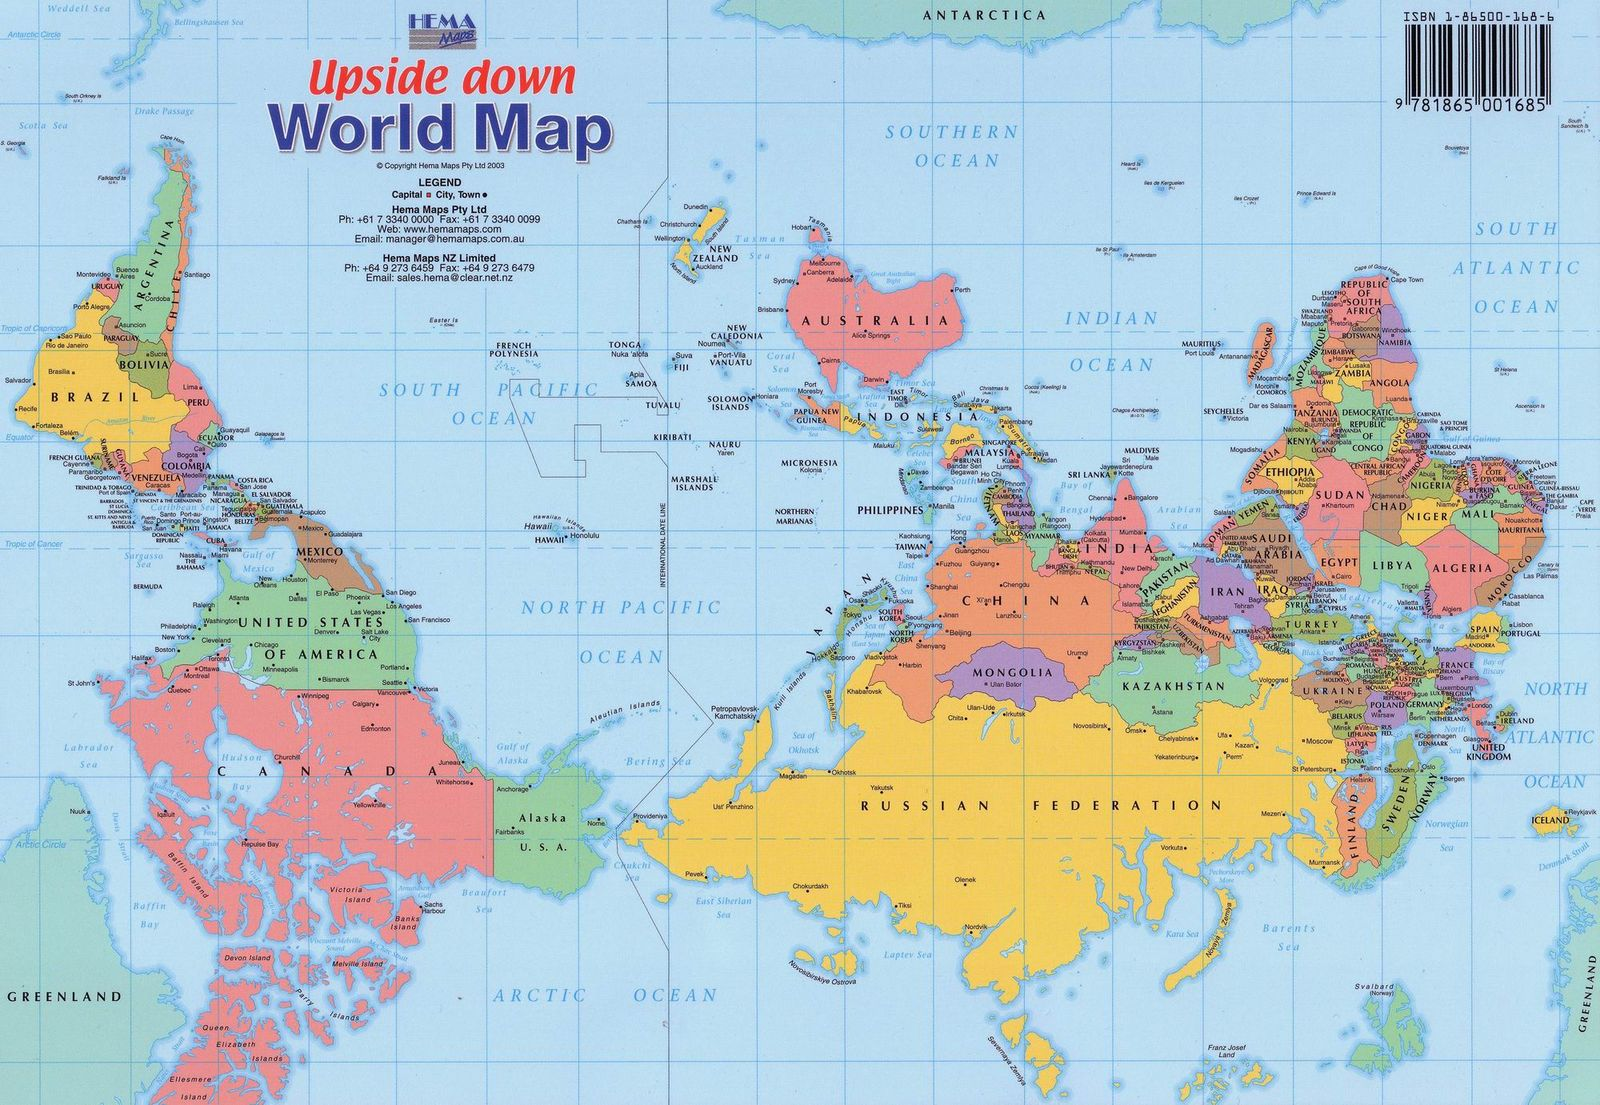 D E C E P T O L O G Y Upside Down World Map Shows North Is Up - Earth map us china